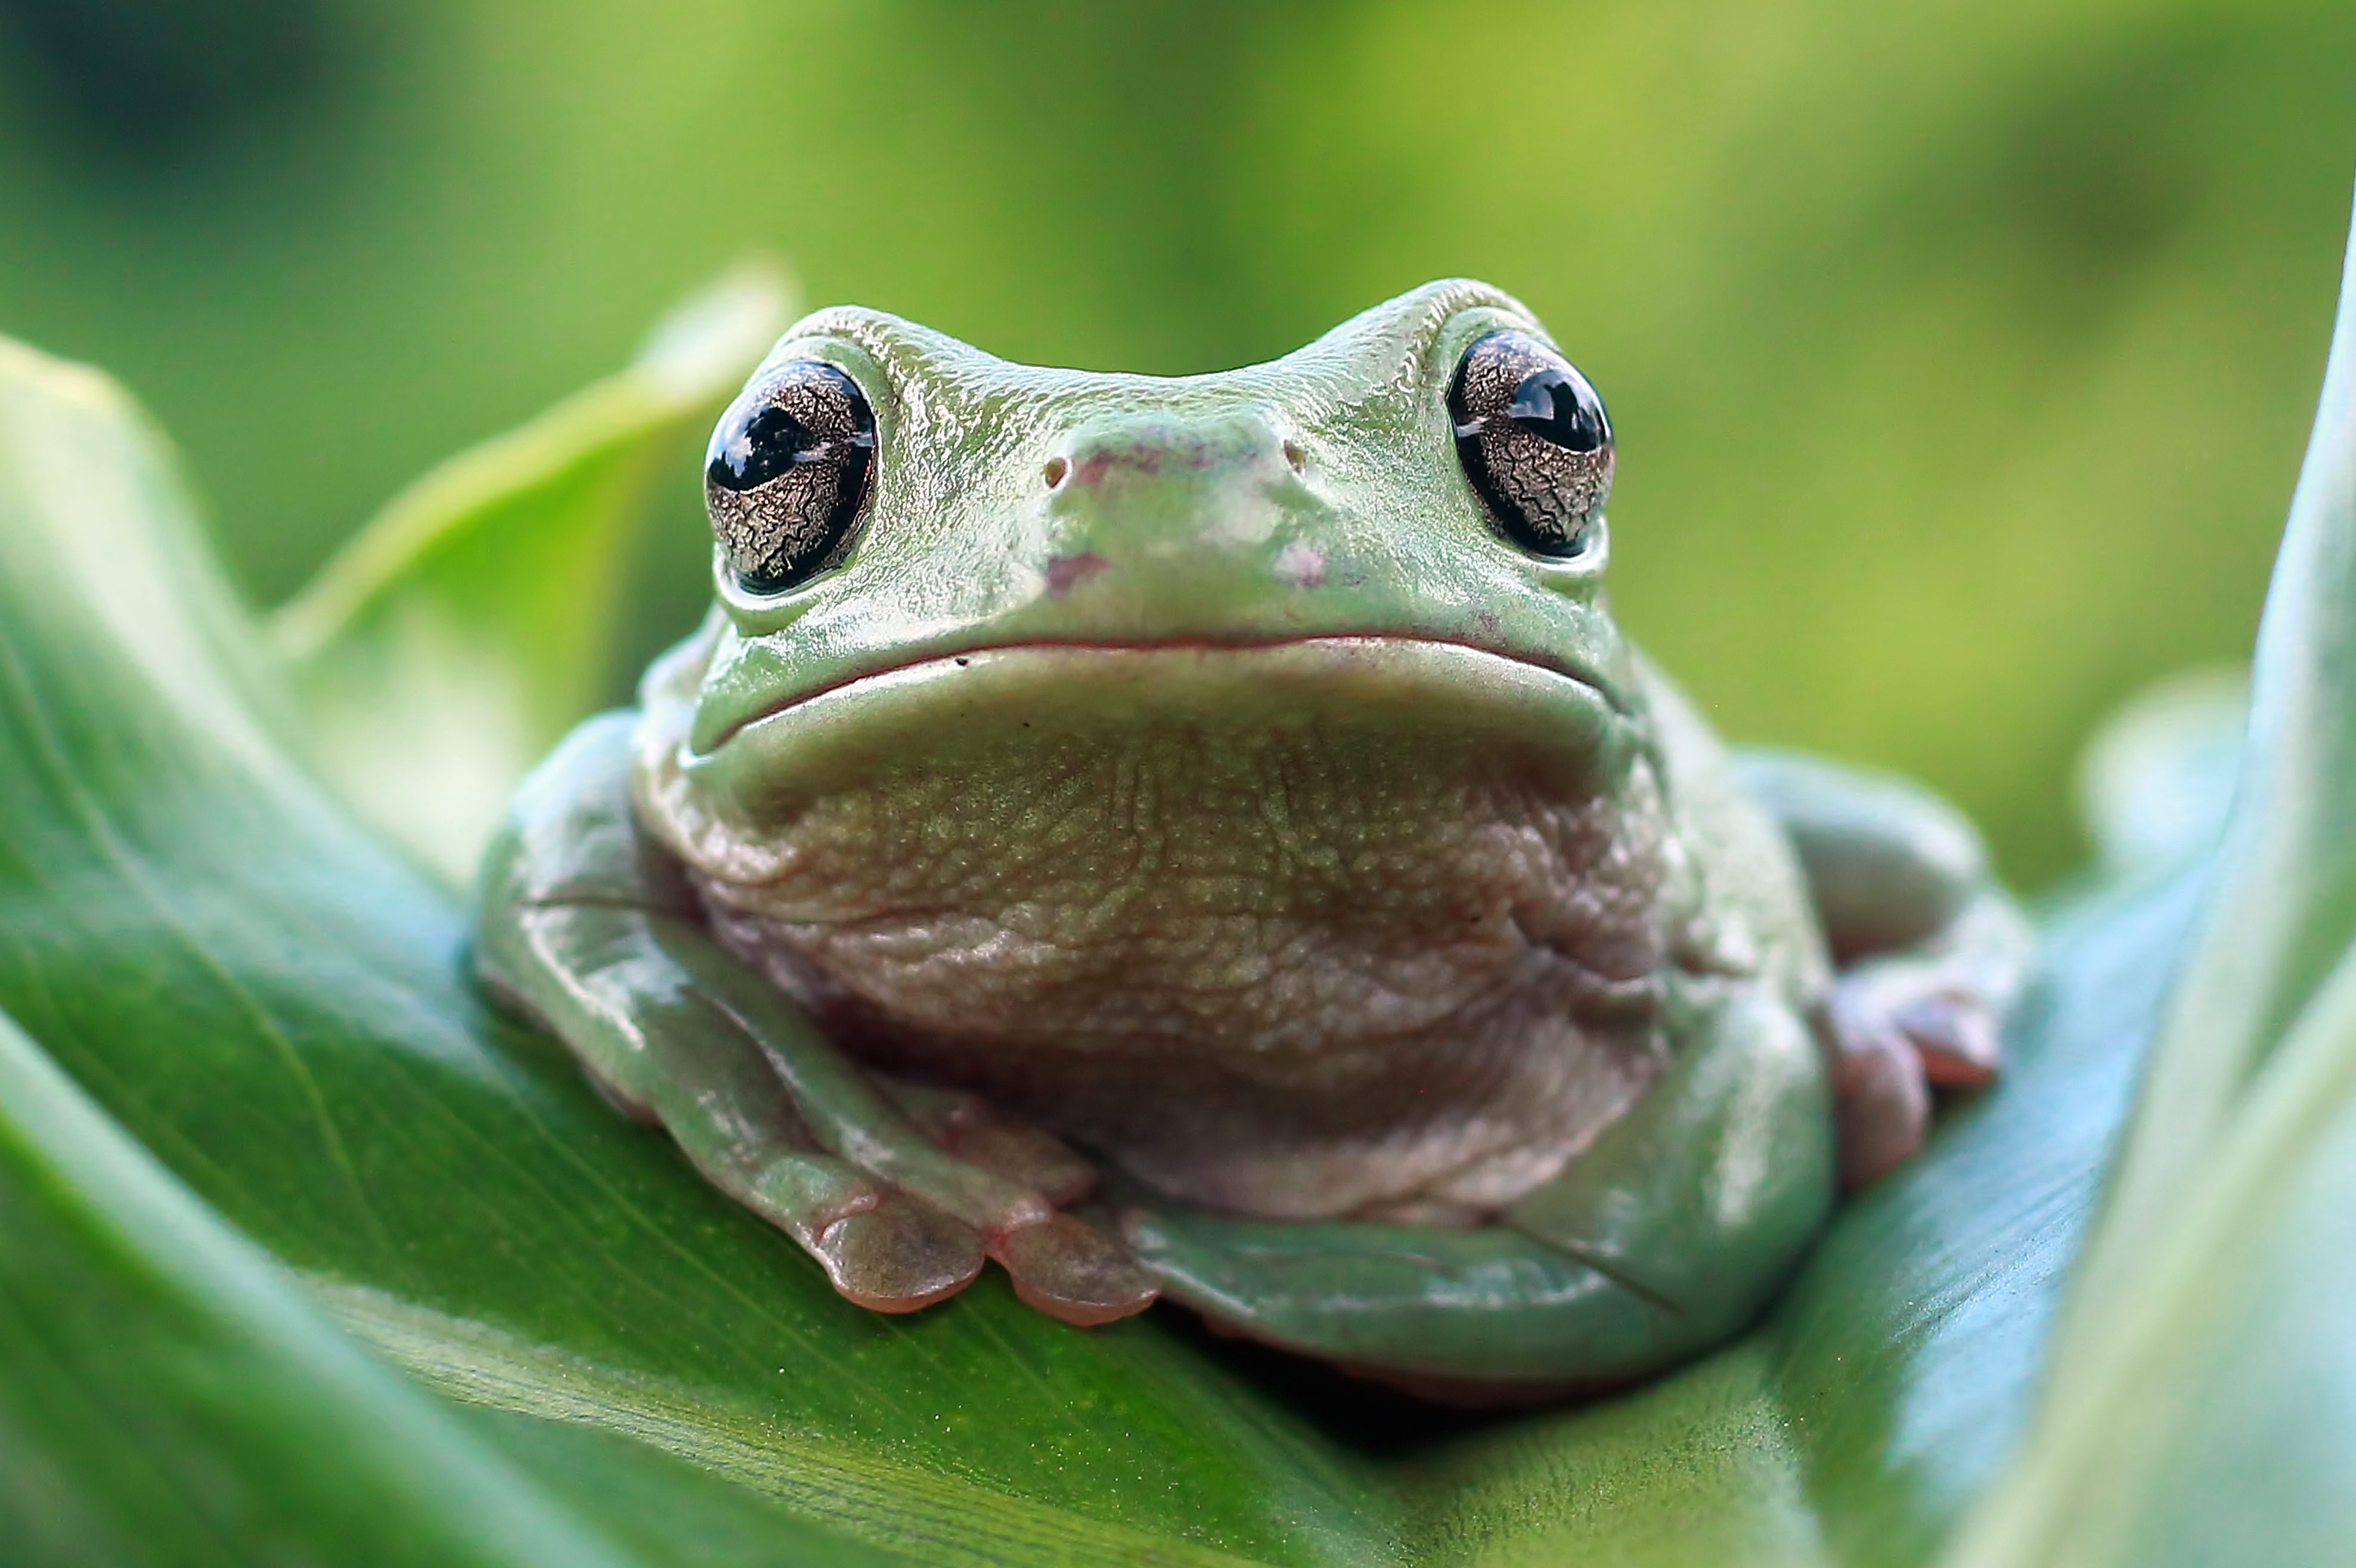 Dumpy frog on green leaves, Dumpy frog sitting on branch